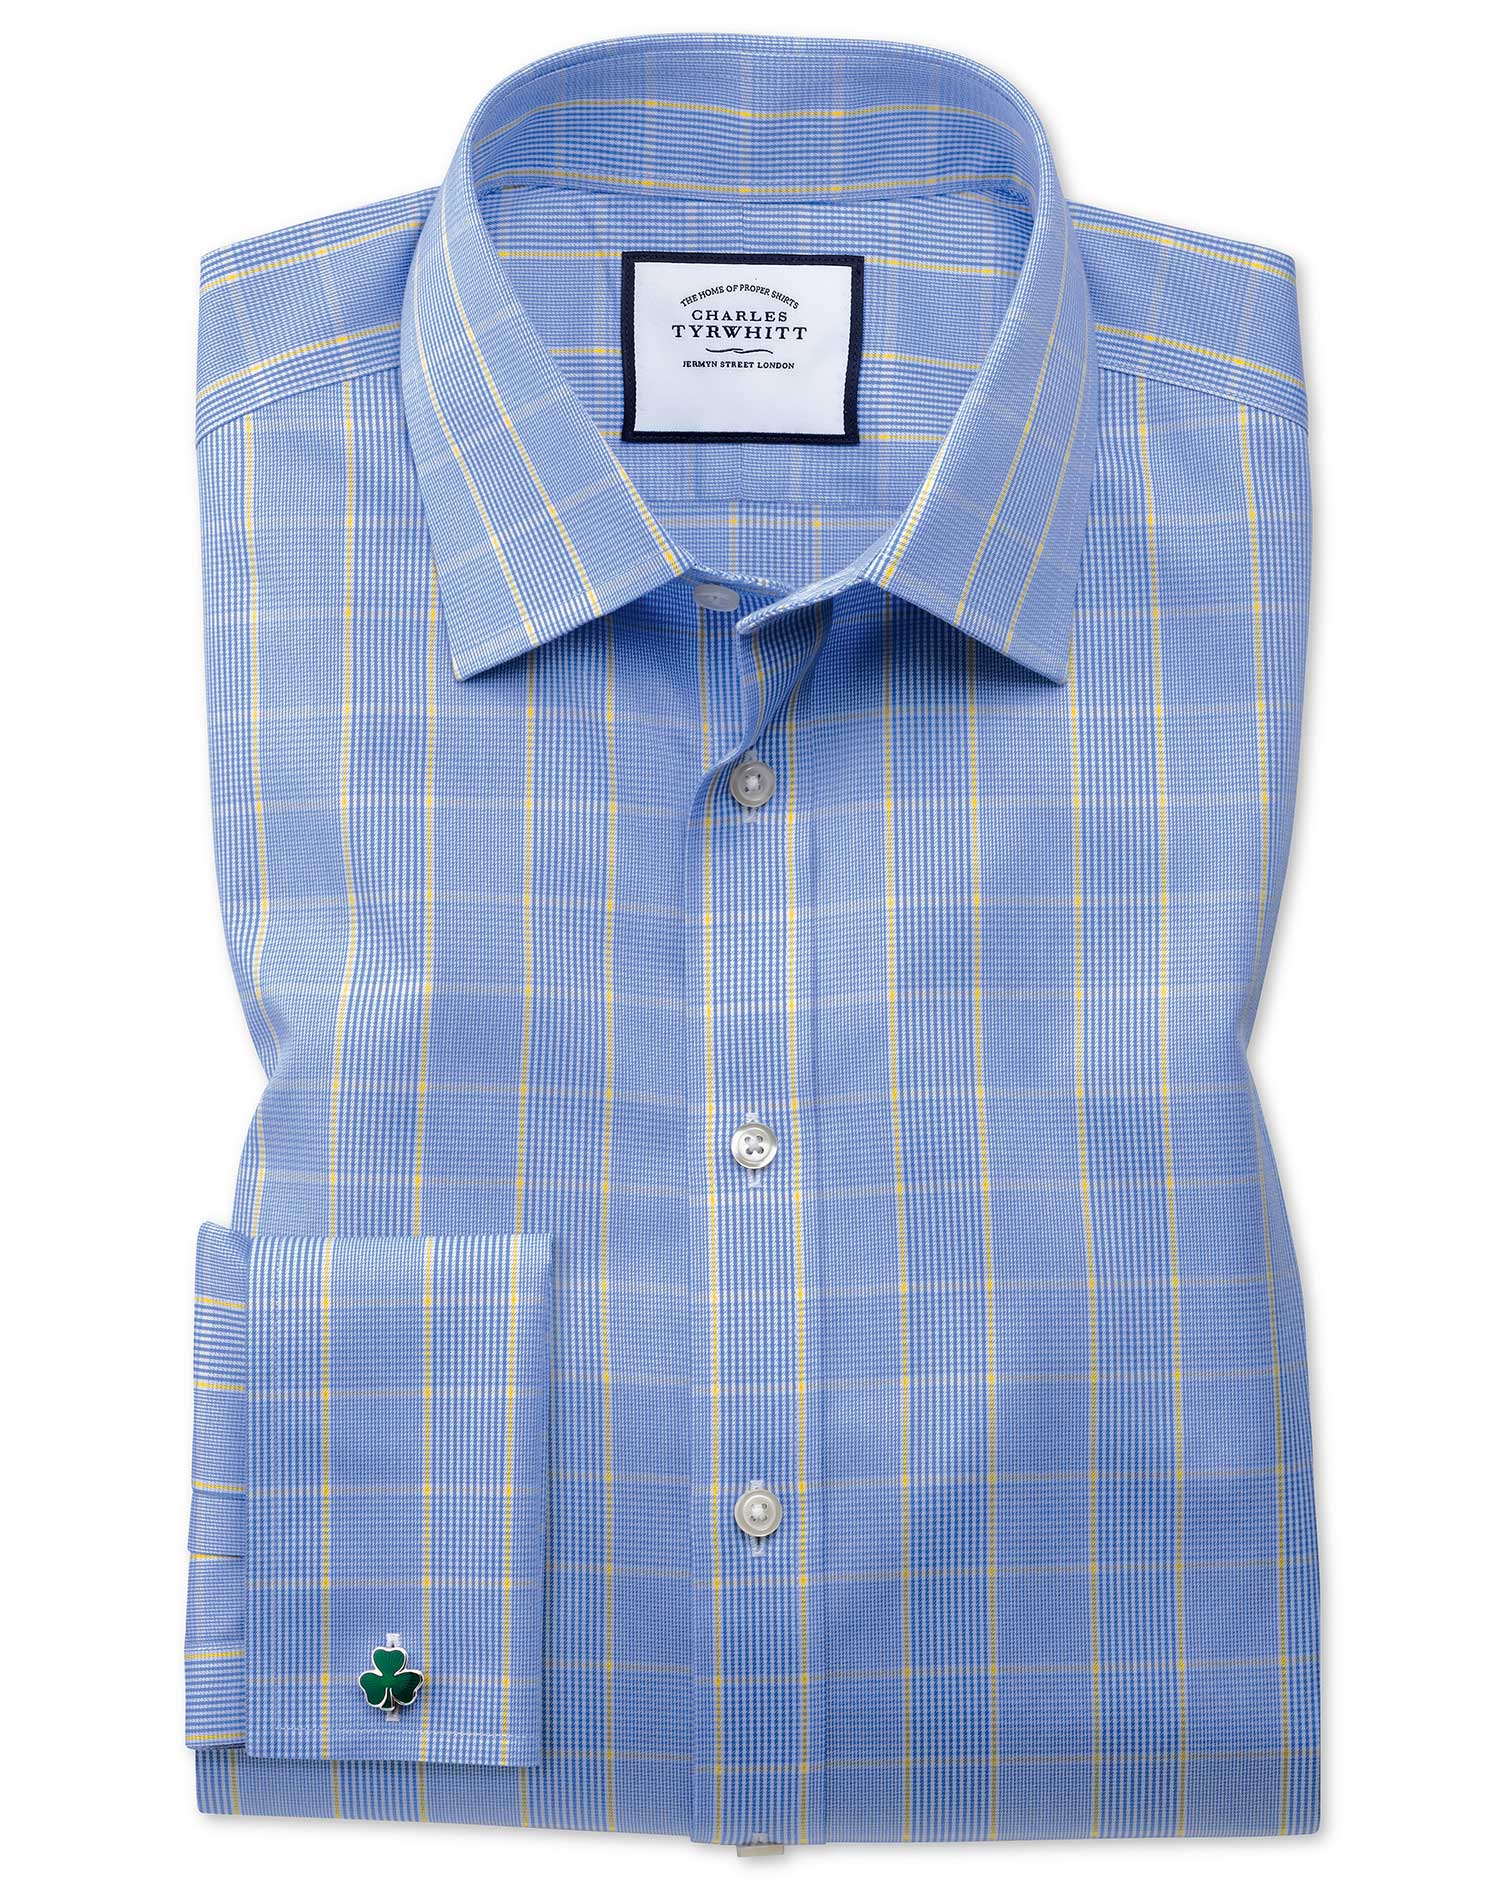 Slim Fit Non-Iron Prince Of Wales Blue and Gold Cotton Formal Shirt Double Cuff Size 17.5/35 by Char